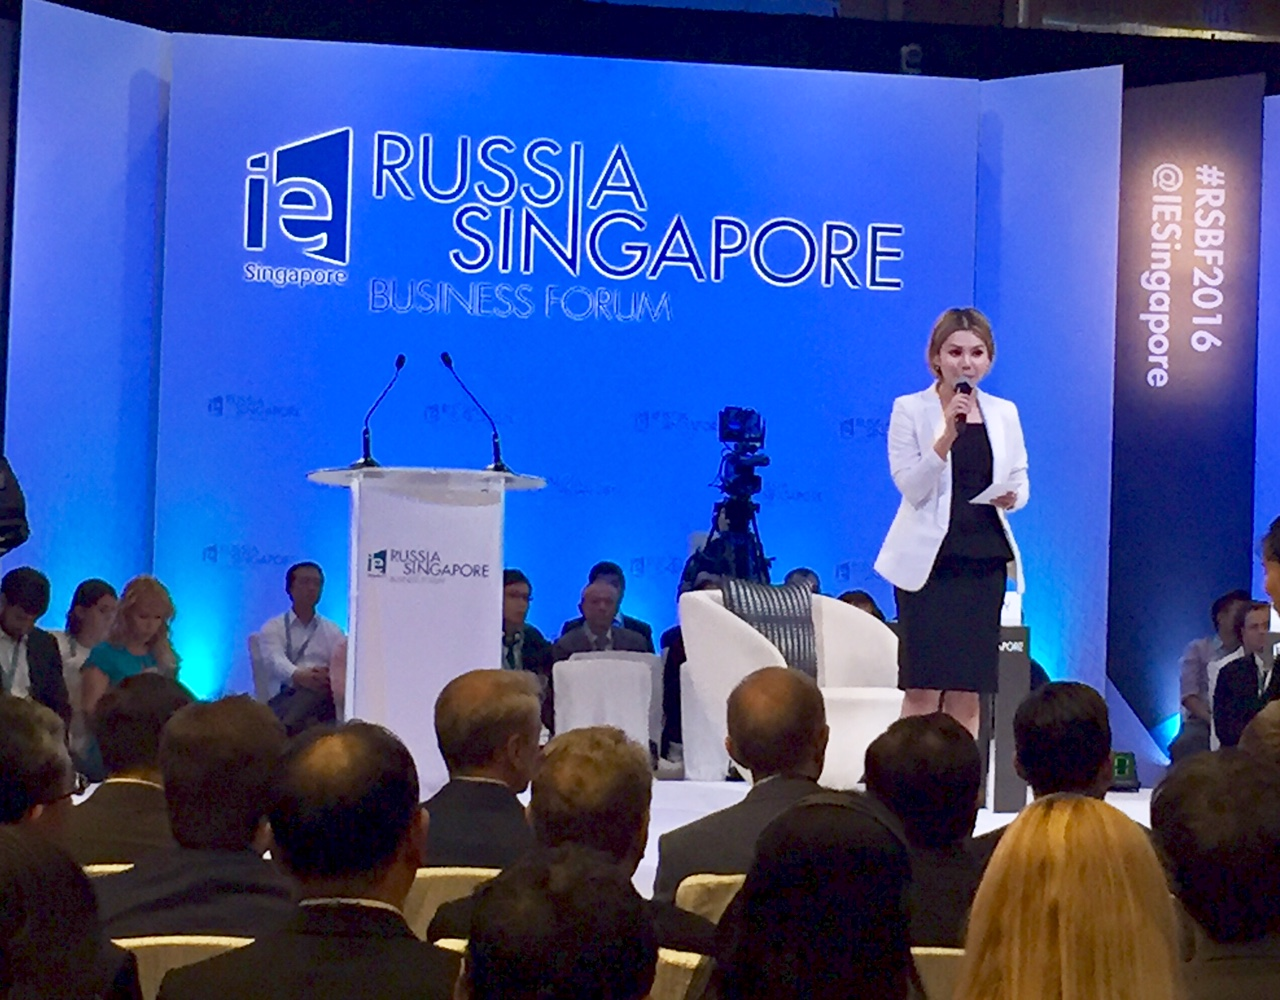 Russia-Singapore Business Forum 2016